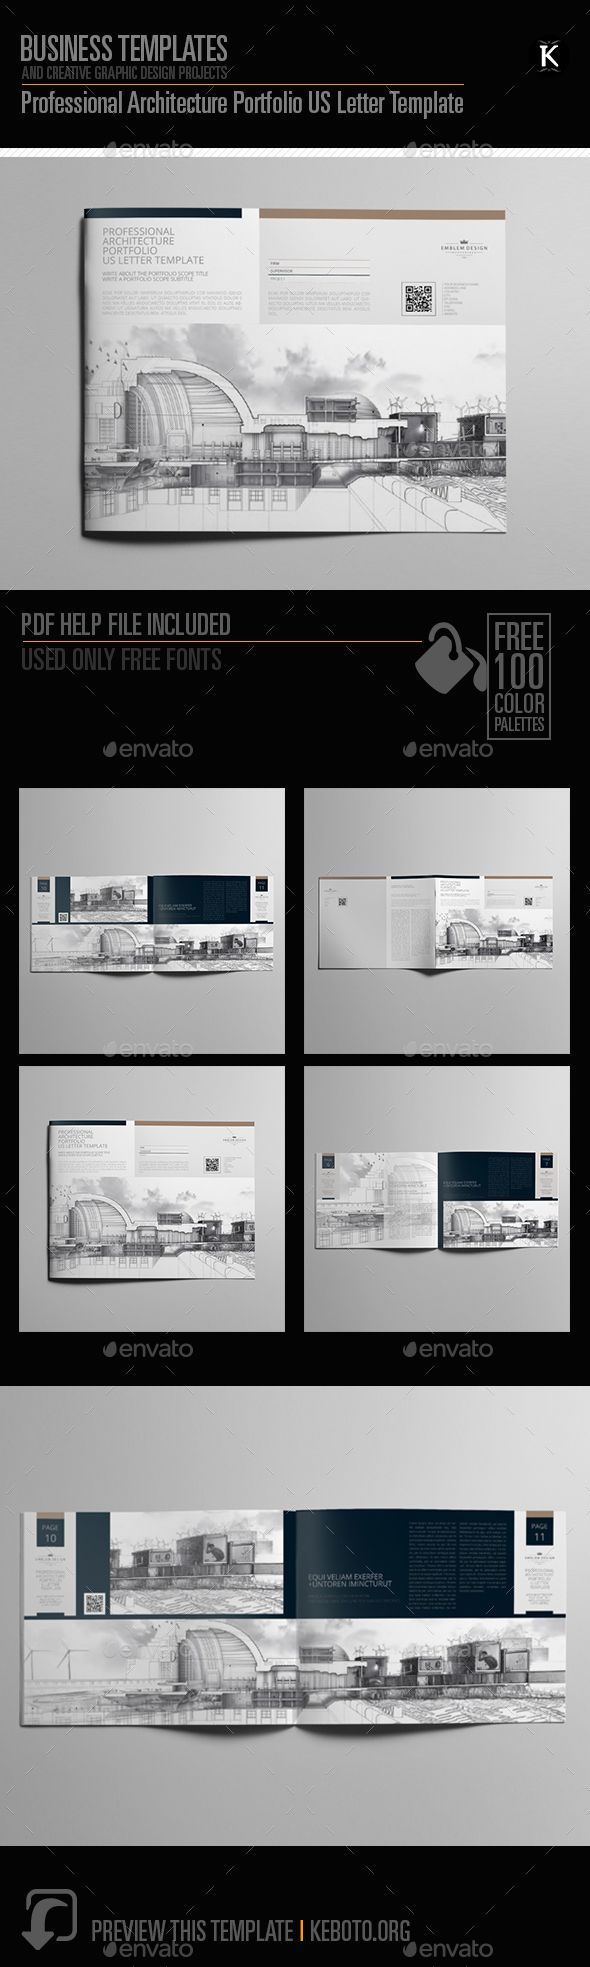 Professional Architecture Portfolio Brochure US Letter Template InDesign INDD